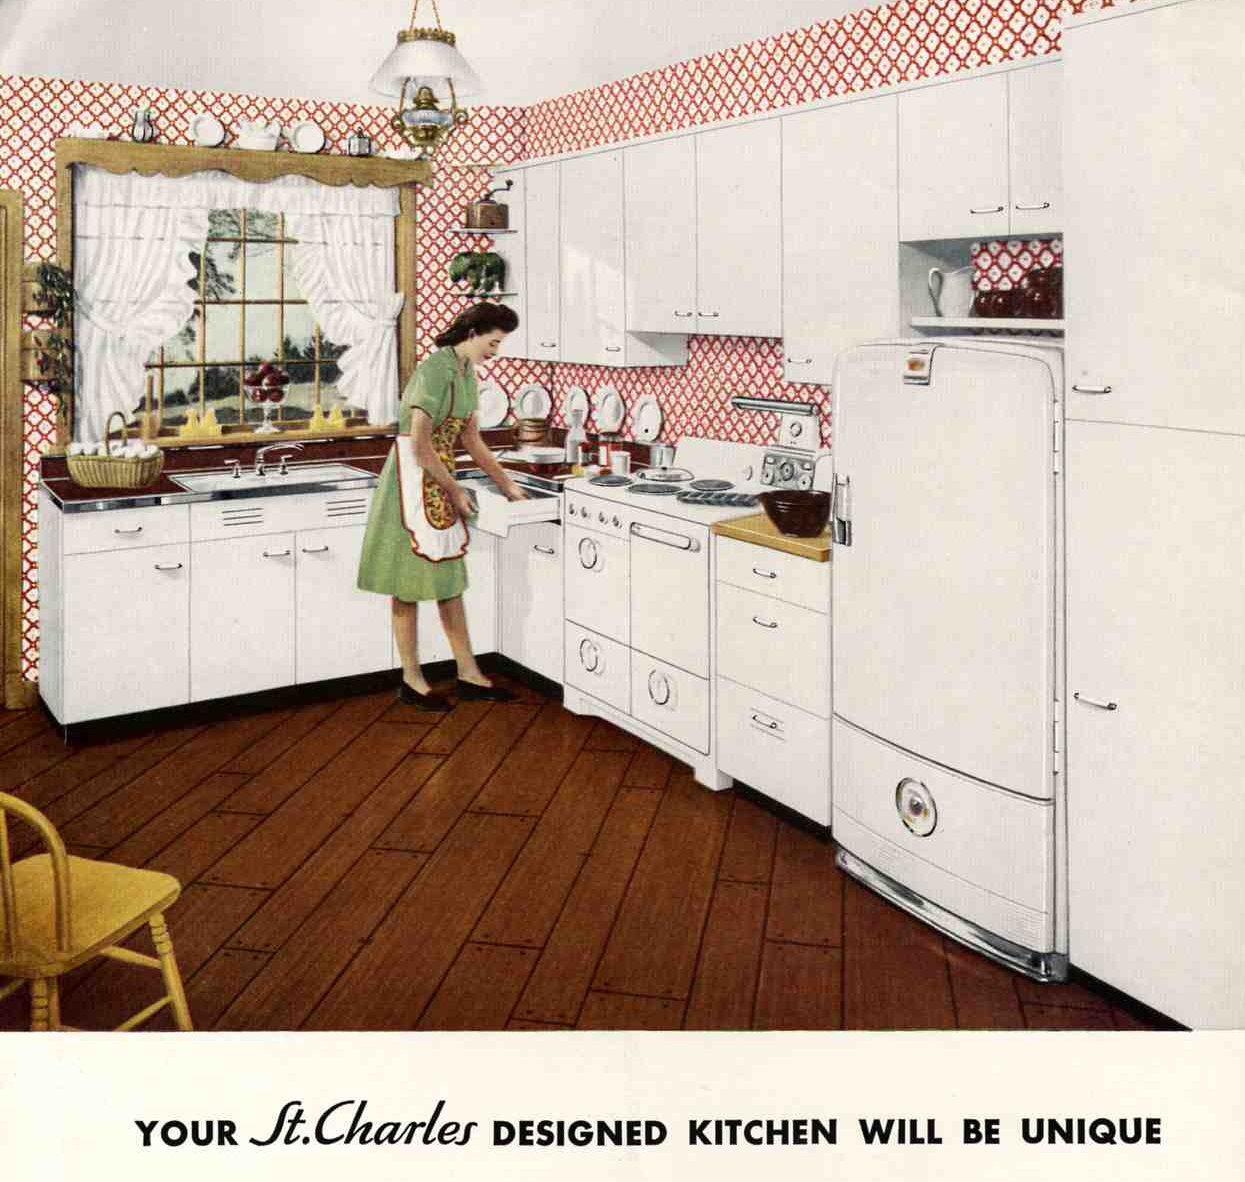 Retro Kitchen Illustration: 1948 Was A Very Good Year: Awesome Retro Kitchens And Cary